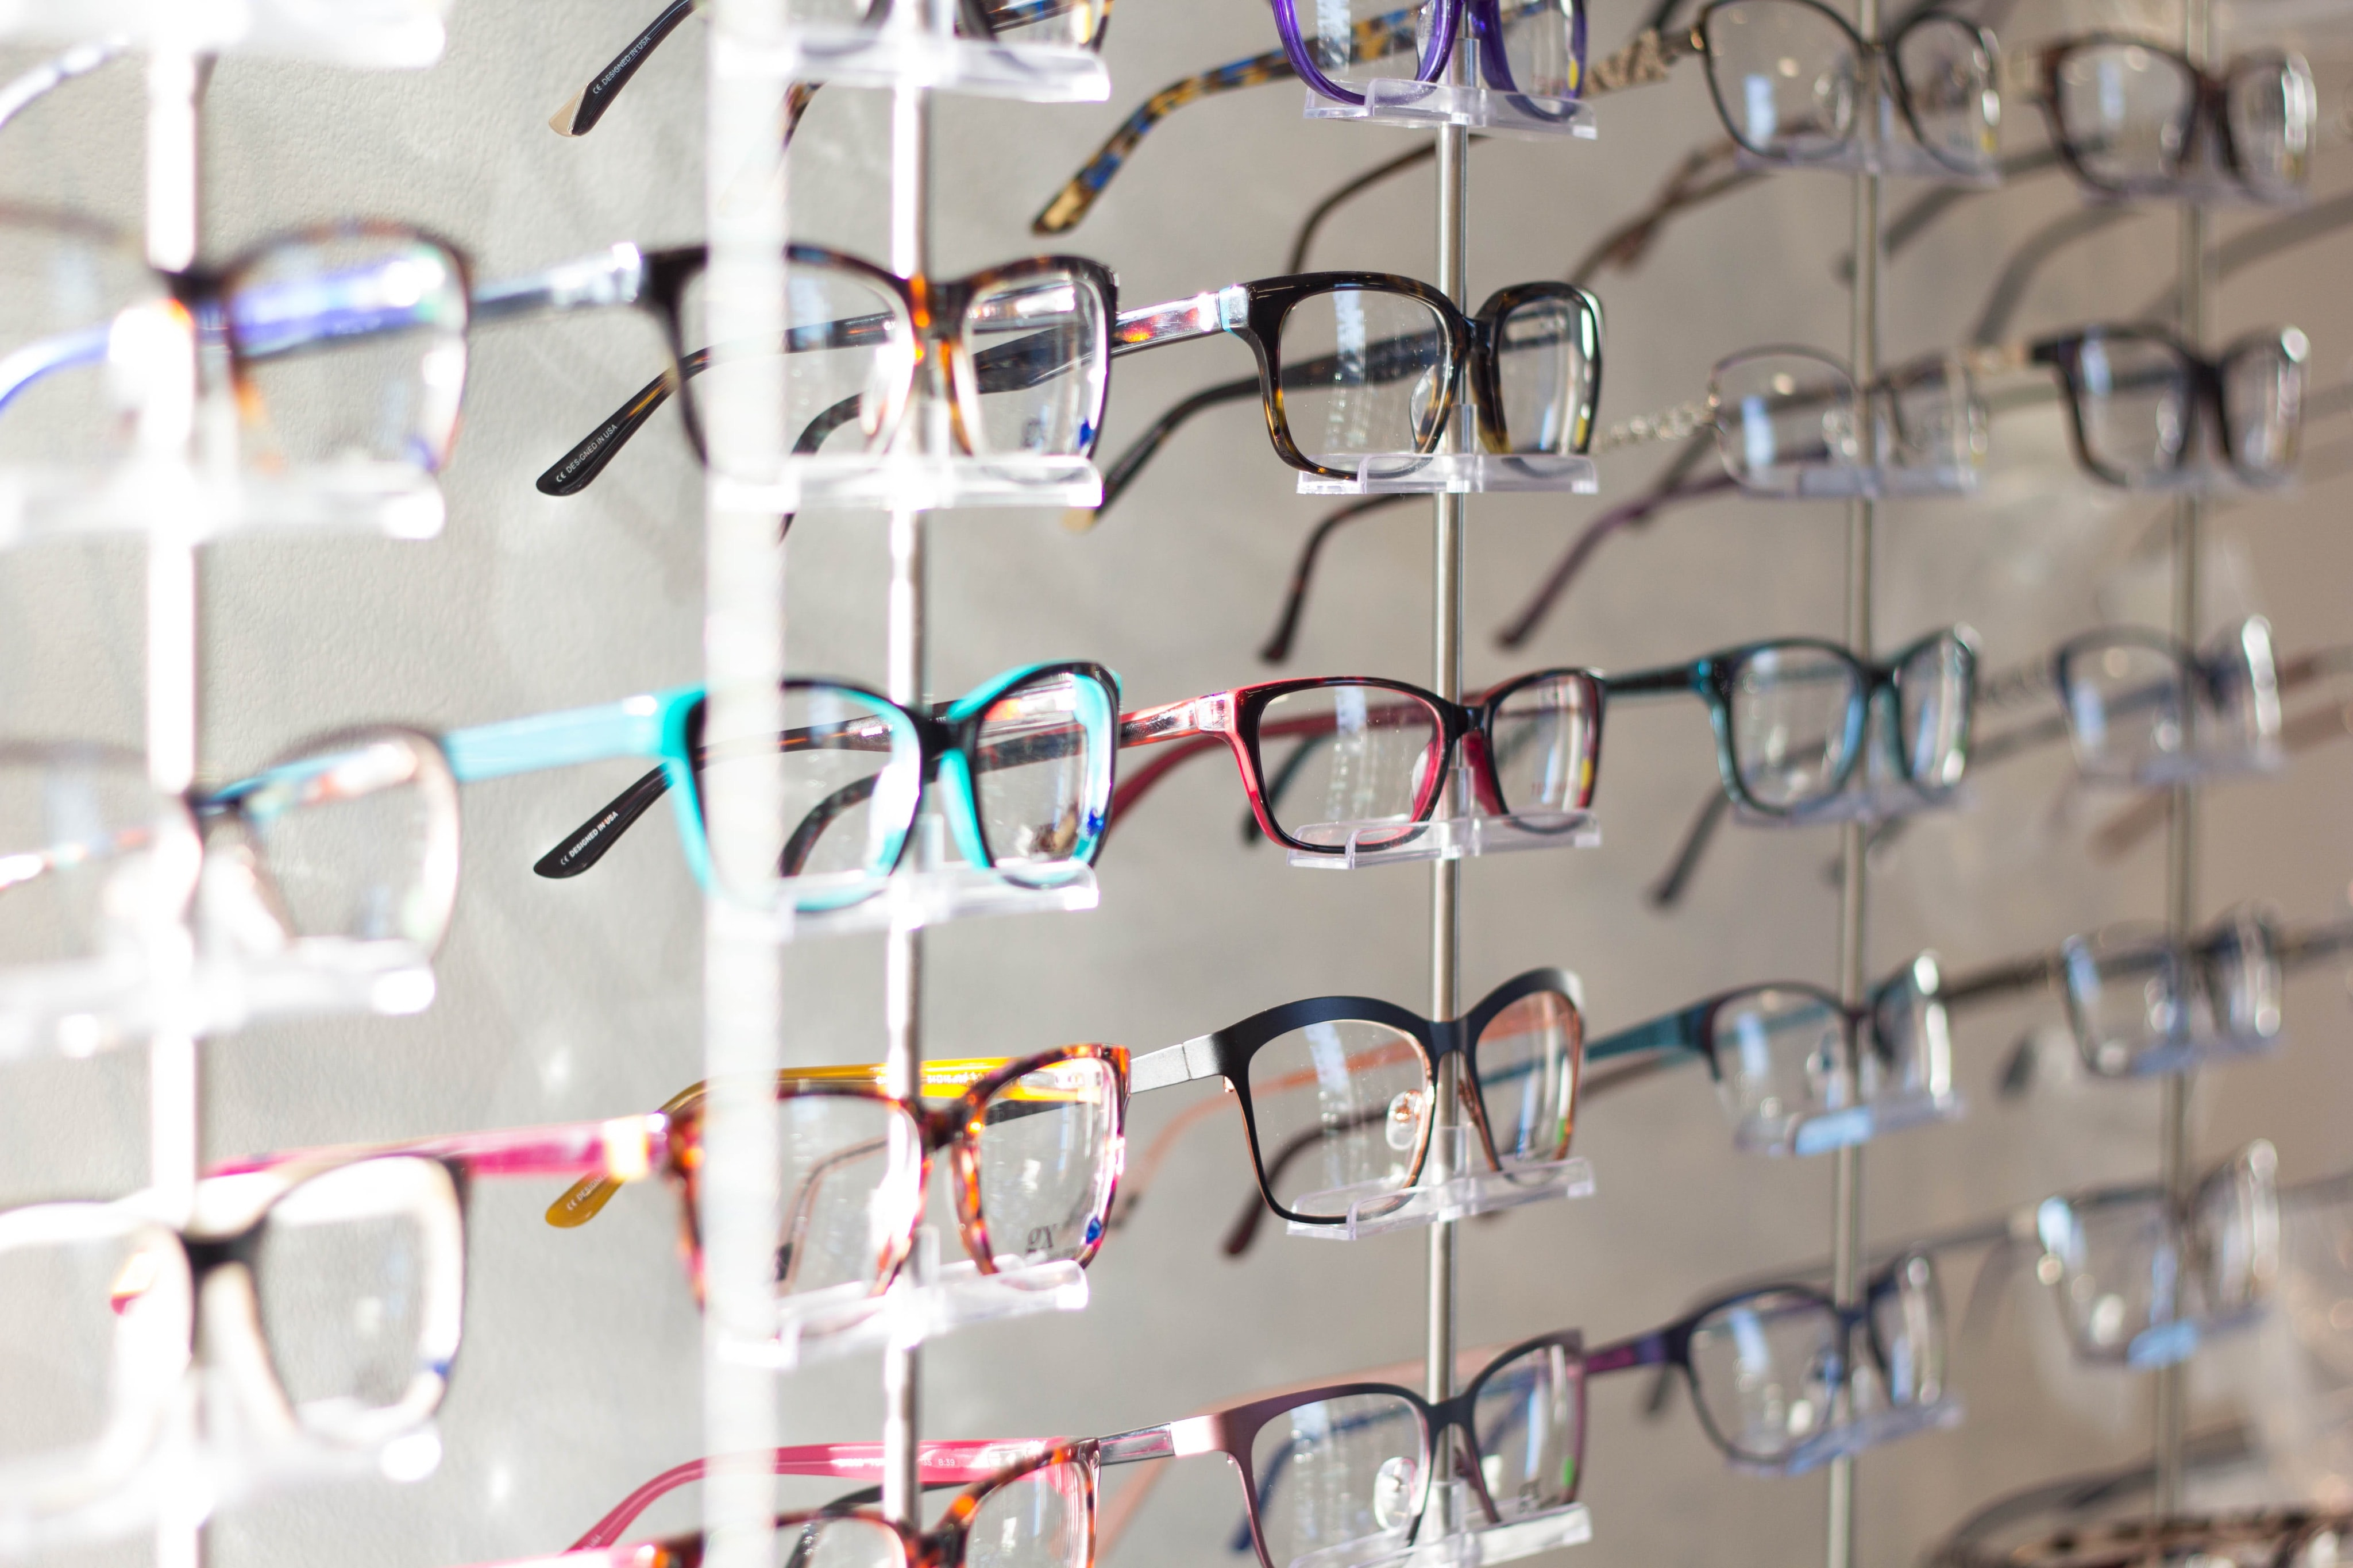 Rows of fashionable eye glasses at an optometrist's office